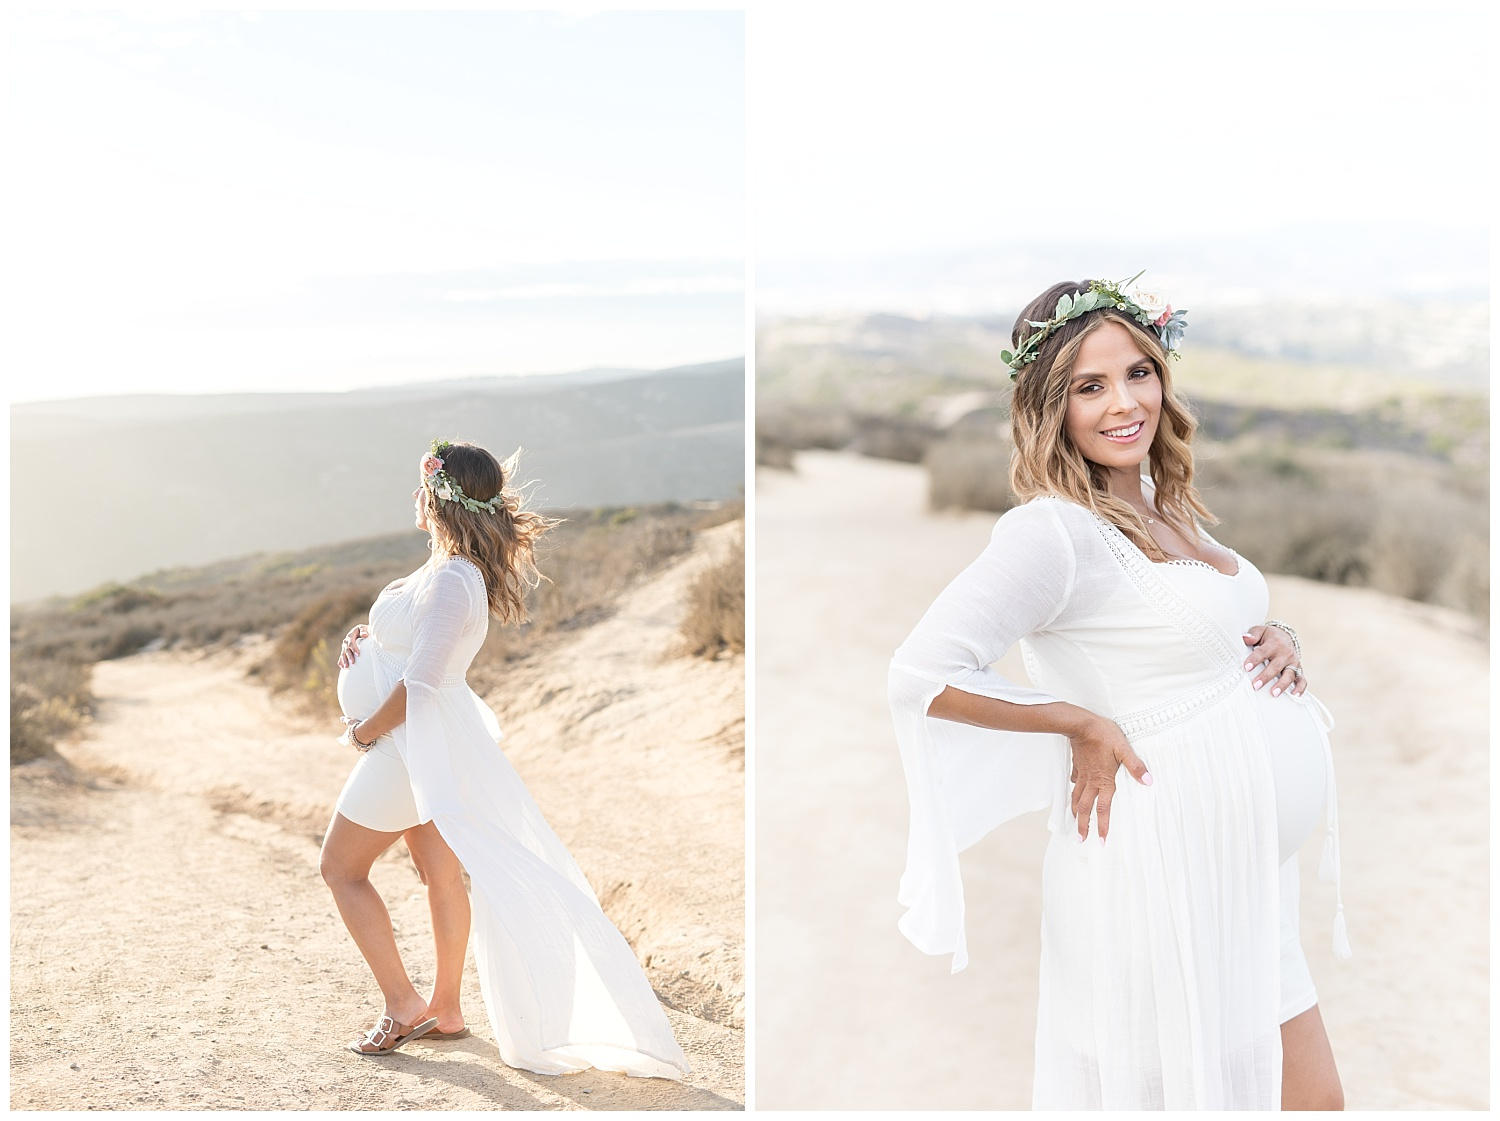 ashley - laguna beach, orange county hiking trail - maternity-0052